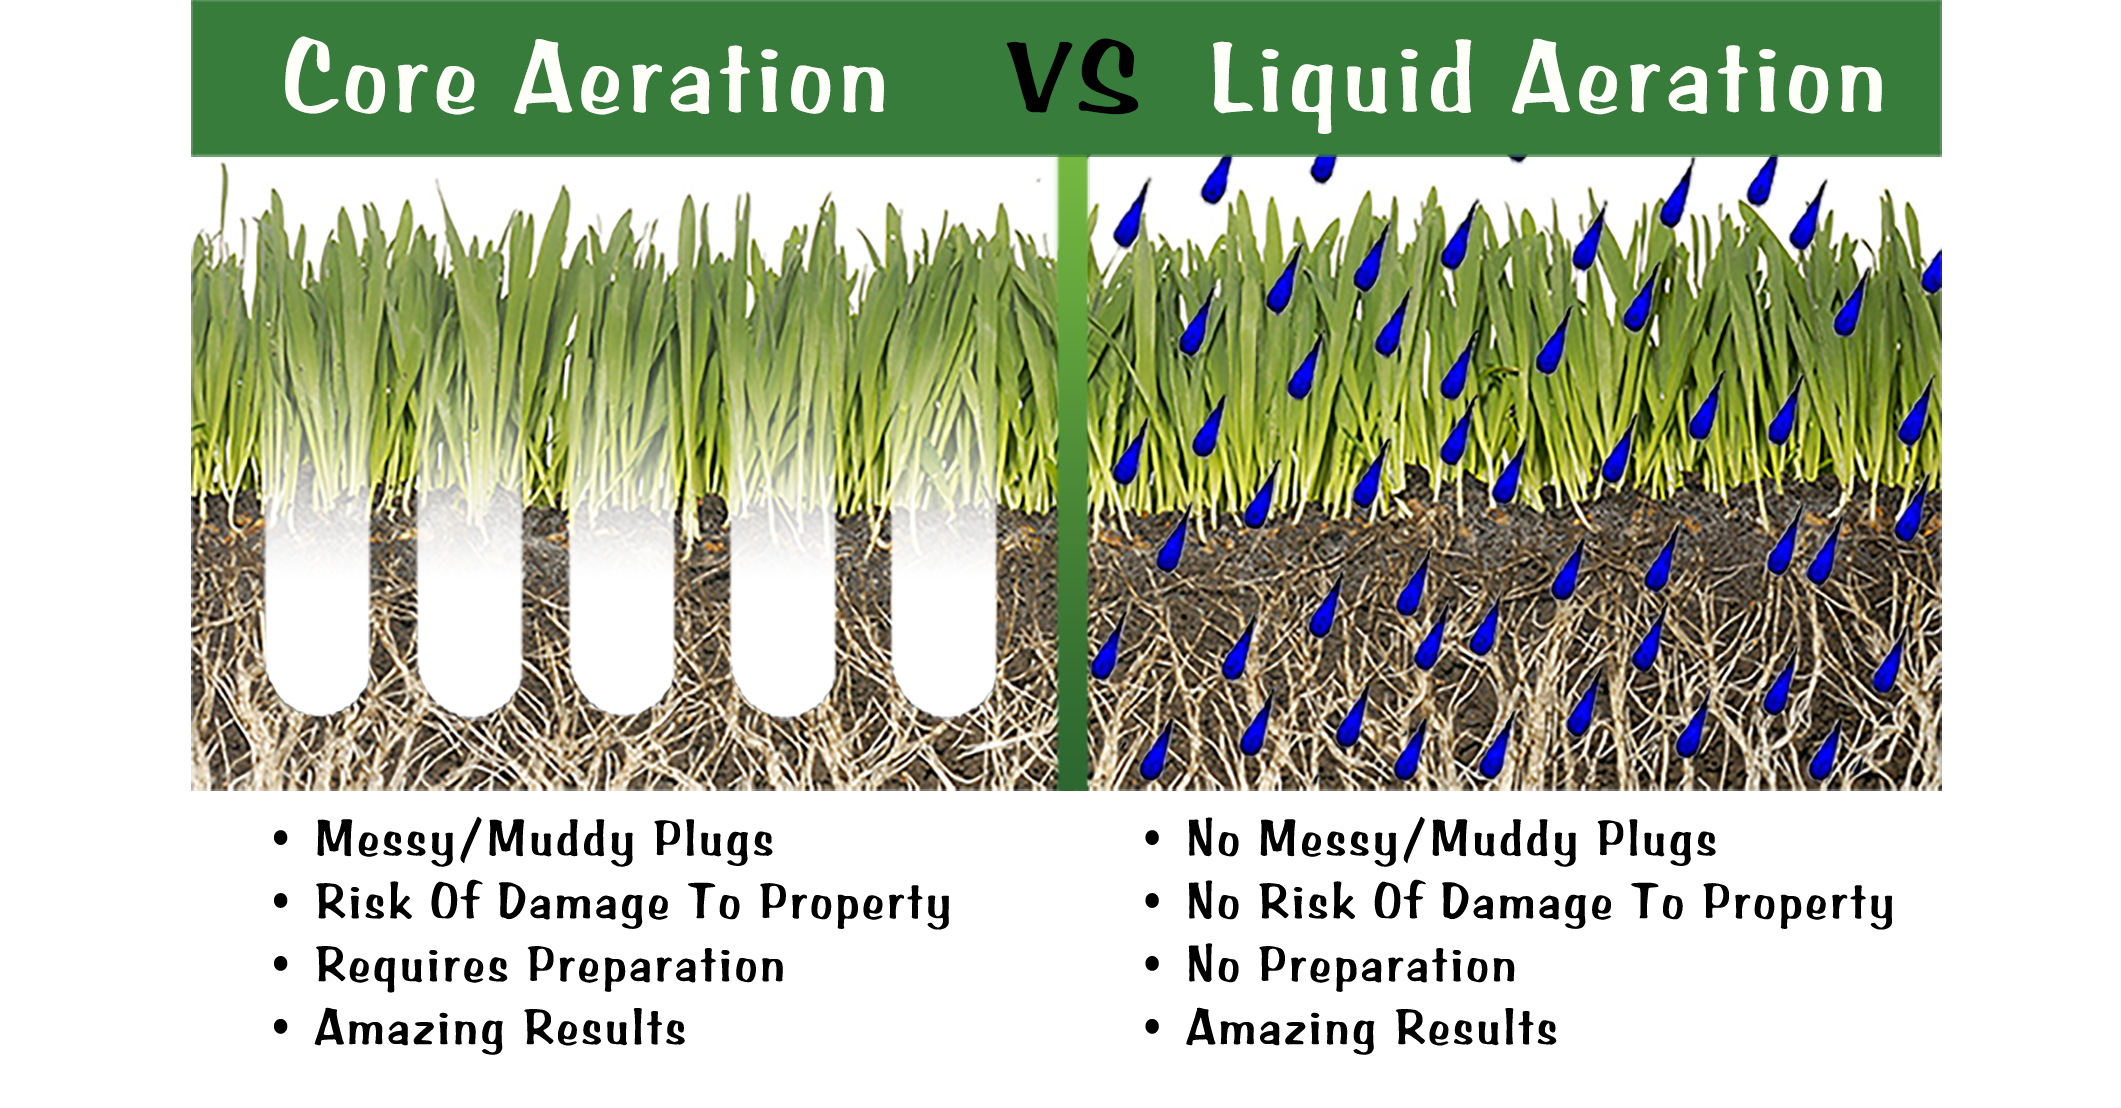 This Is A Diagram That Compares Core Aeration And Liquid Aeration